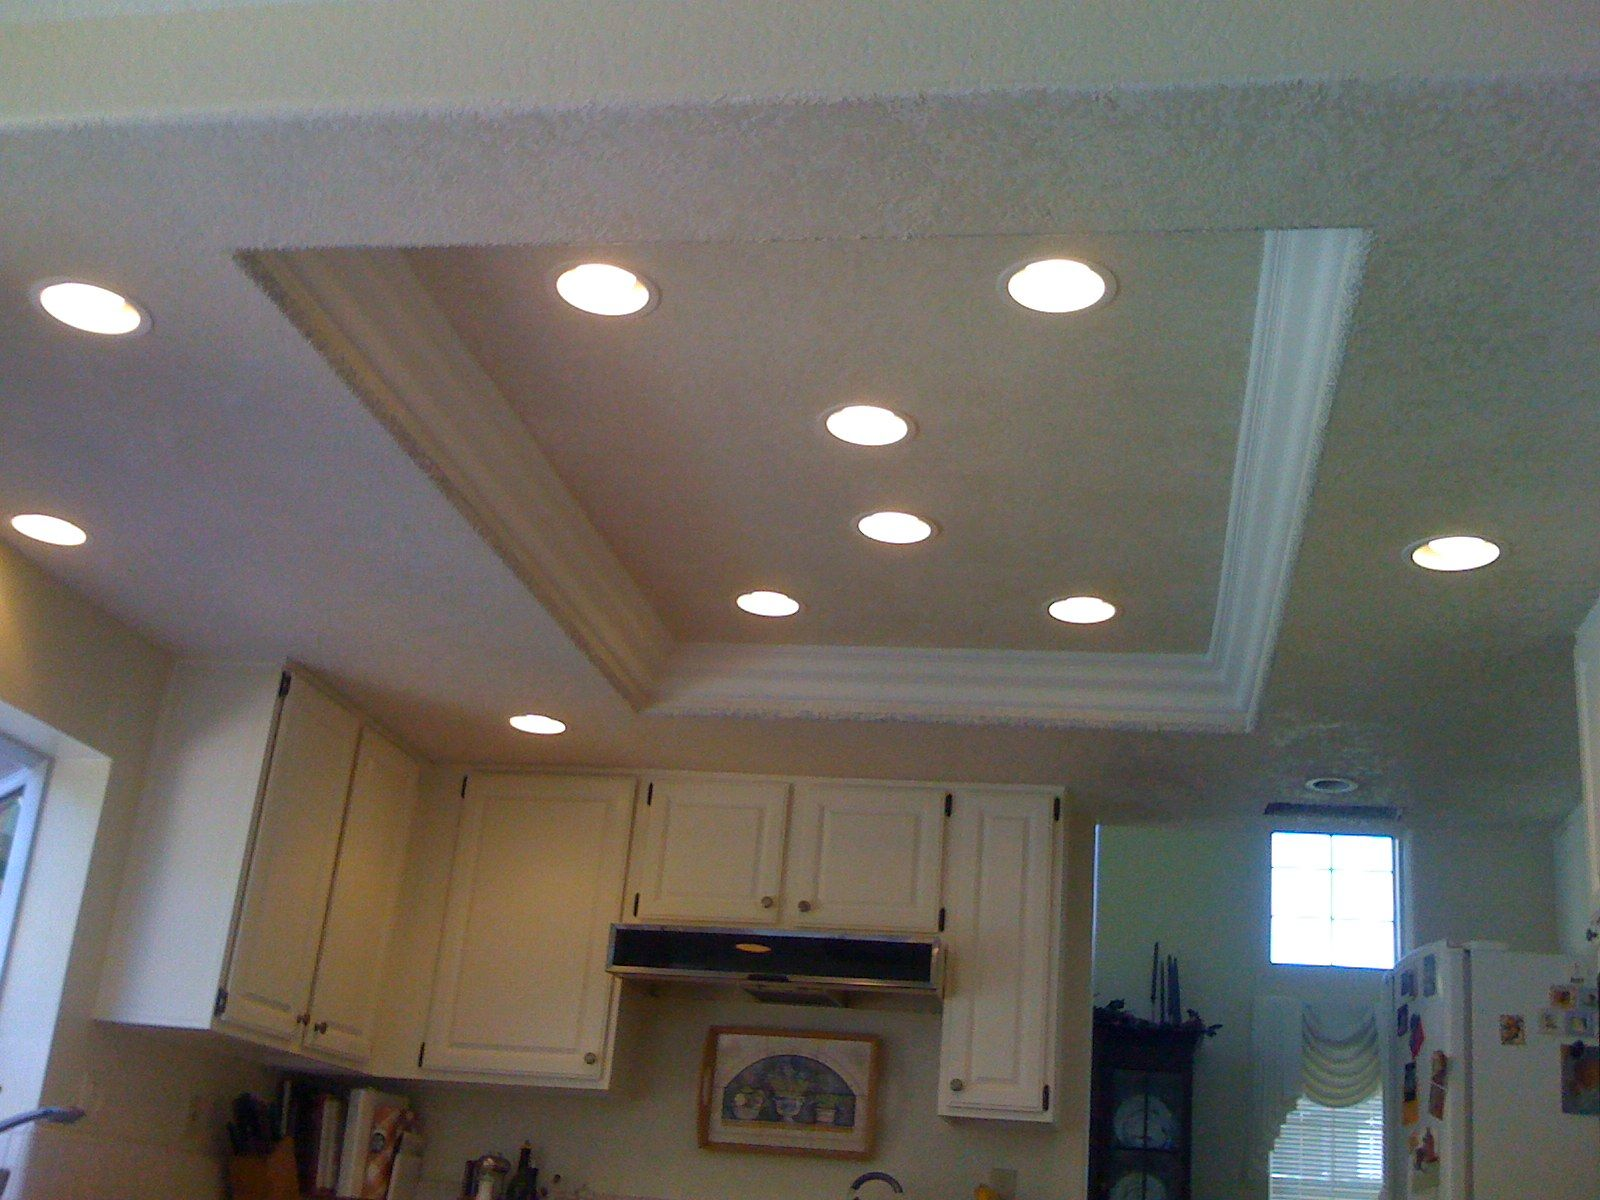 Recessed Lighting For Kitchen Kitchen Recessed Lighting Lights Replace Them With Recessed